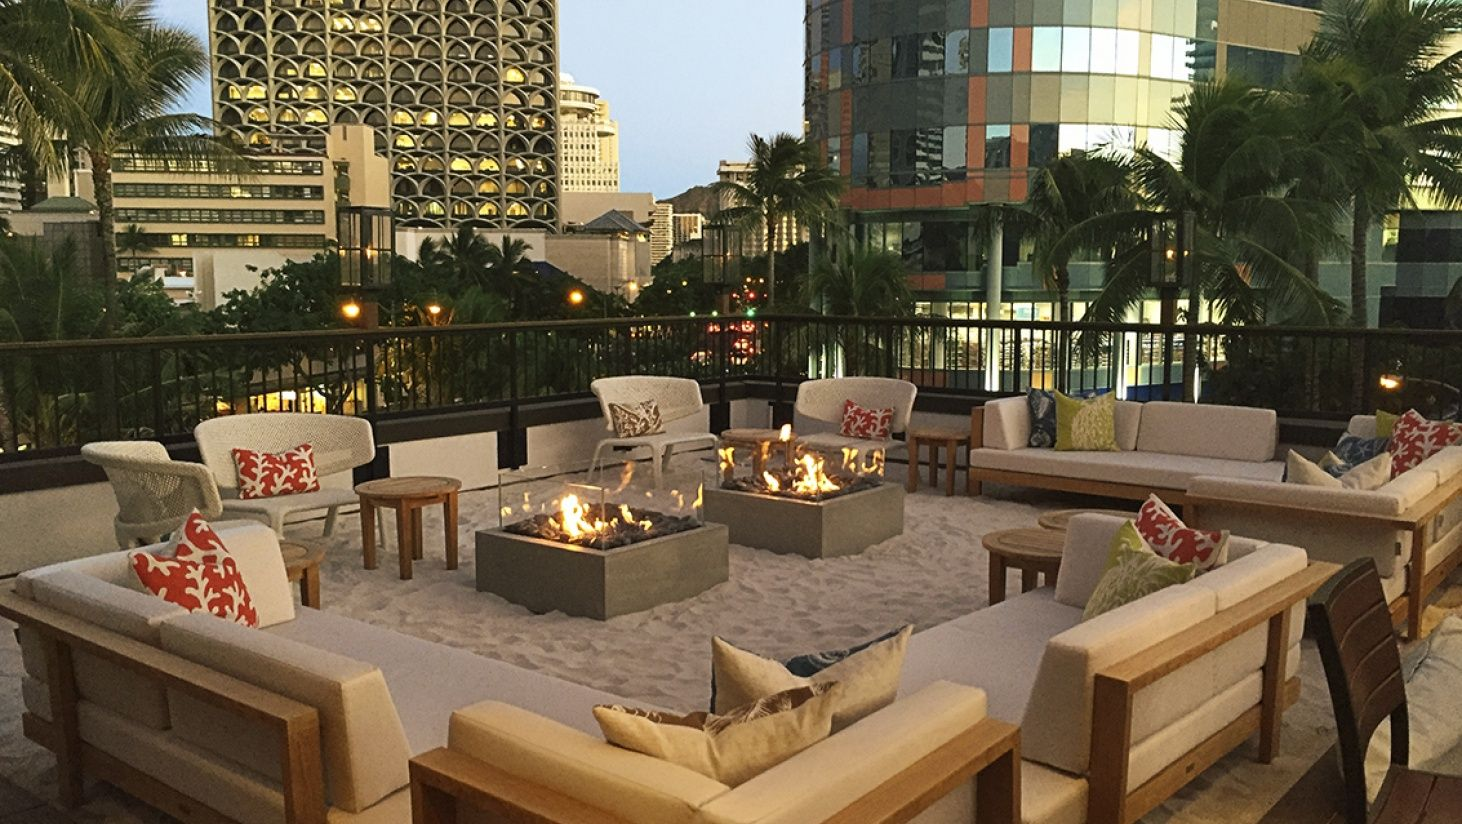 7 Rooftop Deck And Terrace Designs For Your Next Commercial Project Rooftop Design Terrace Design Rooftop Terrace Design